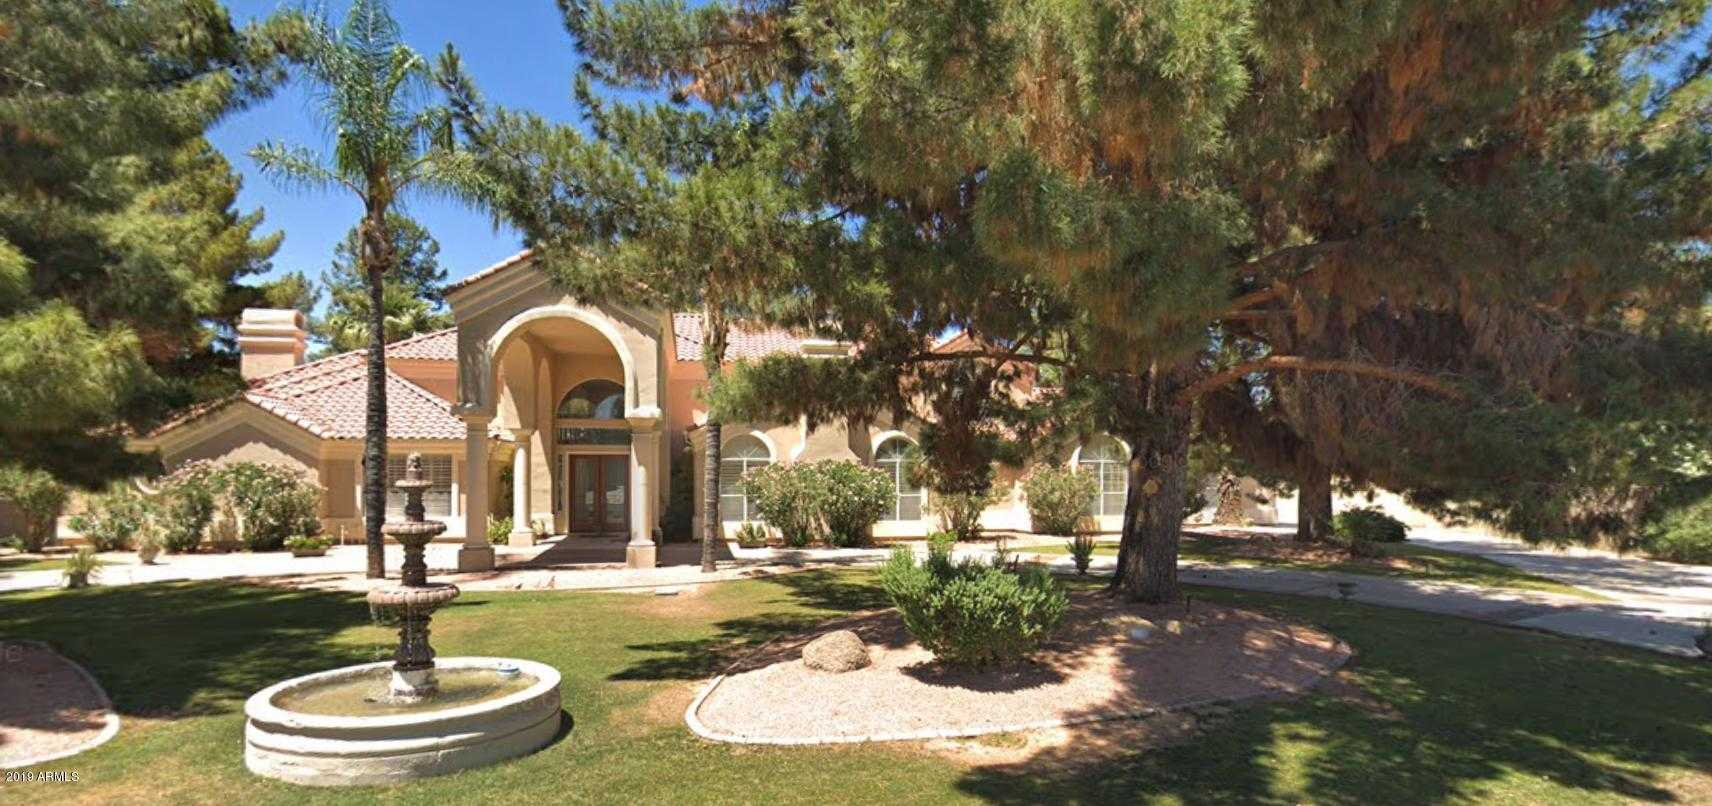 $1,695,000 - 5Br/6Ba - Home for Sale in Folkman Ranch Estates Lot 1-18 Tr A, Paradise Valley